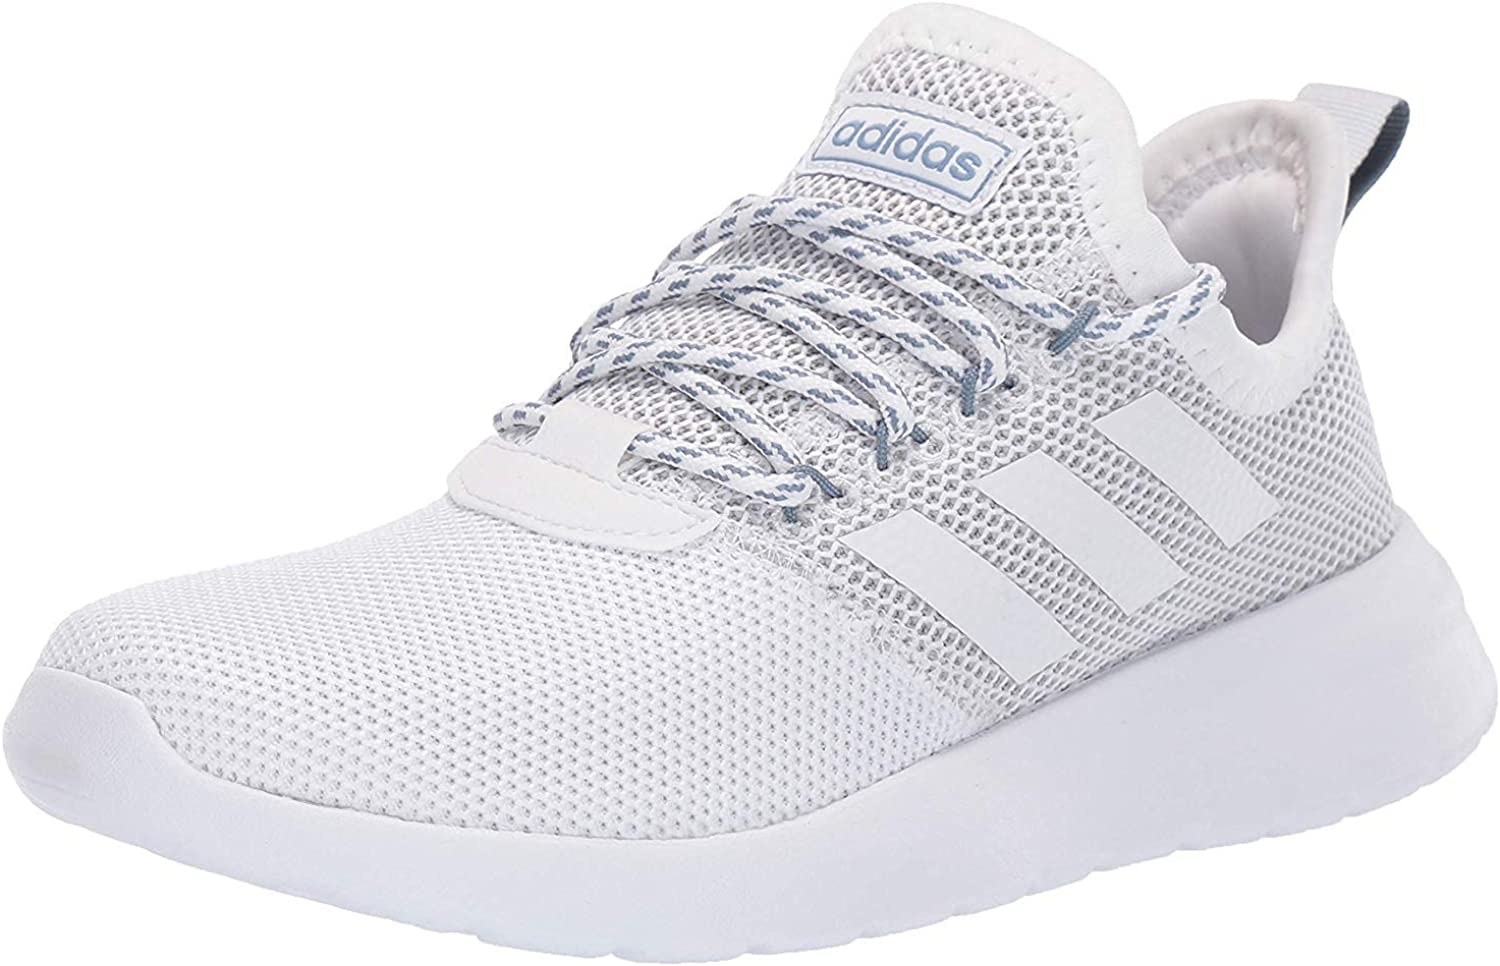 adidas Women's Lite Racer Fitness Shoes